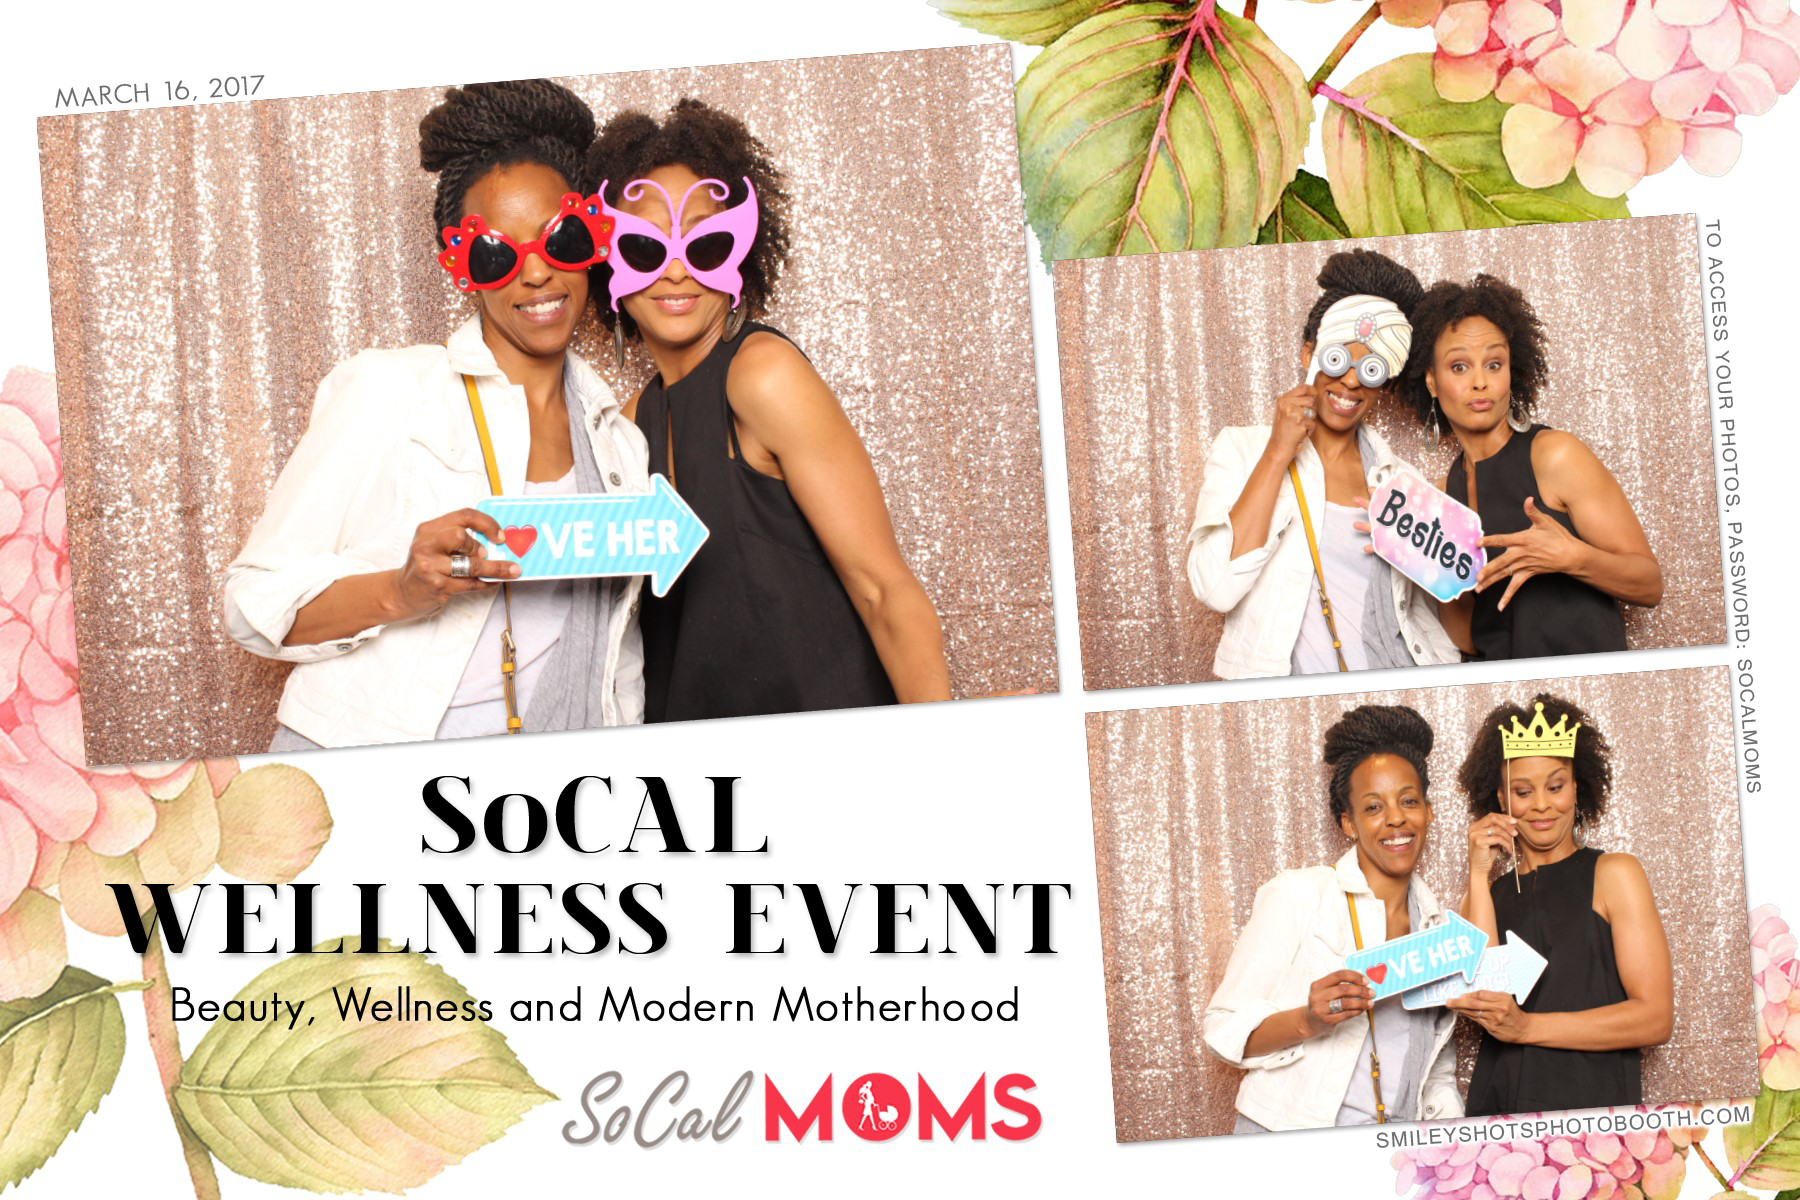 Socal Wellness Event Socal Moms Smiley Shots Photo Booth Photobooth (42).png